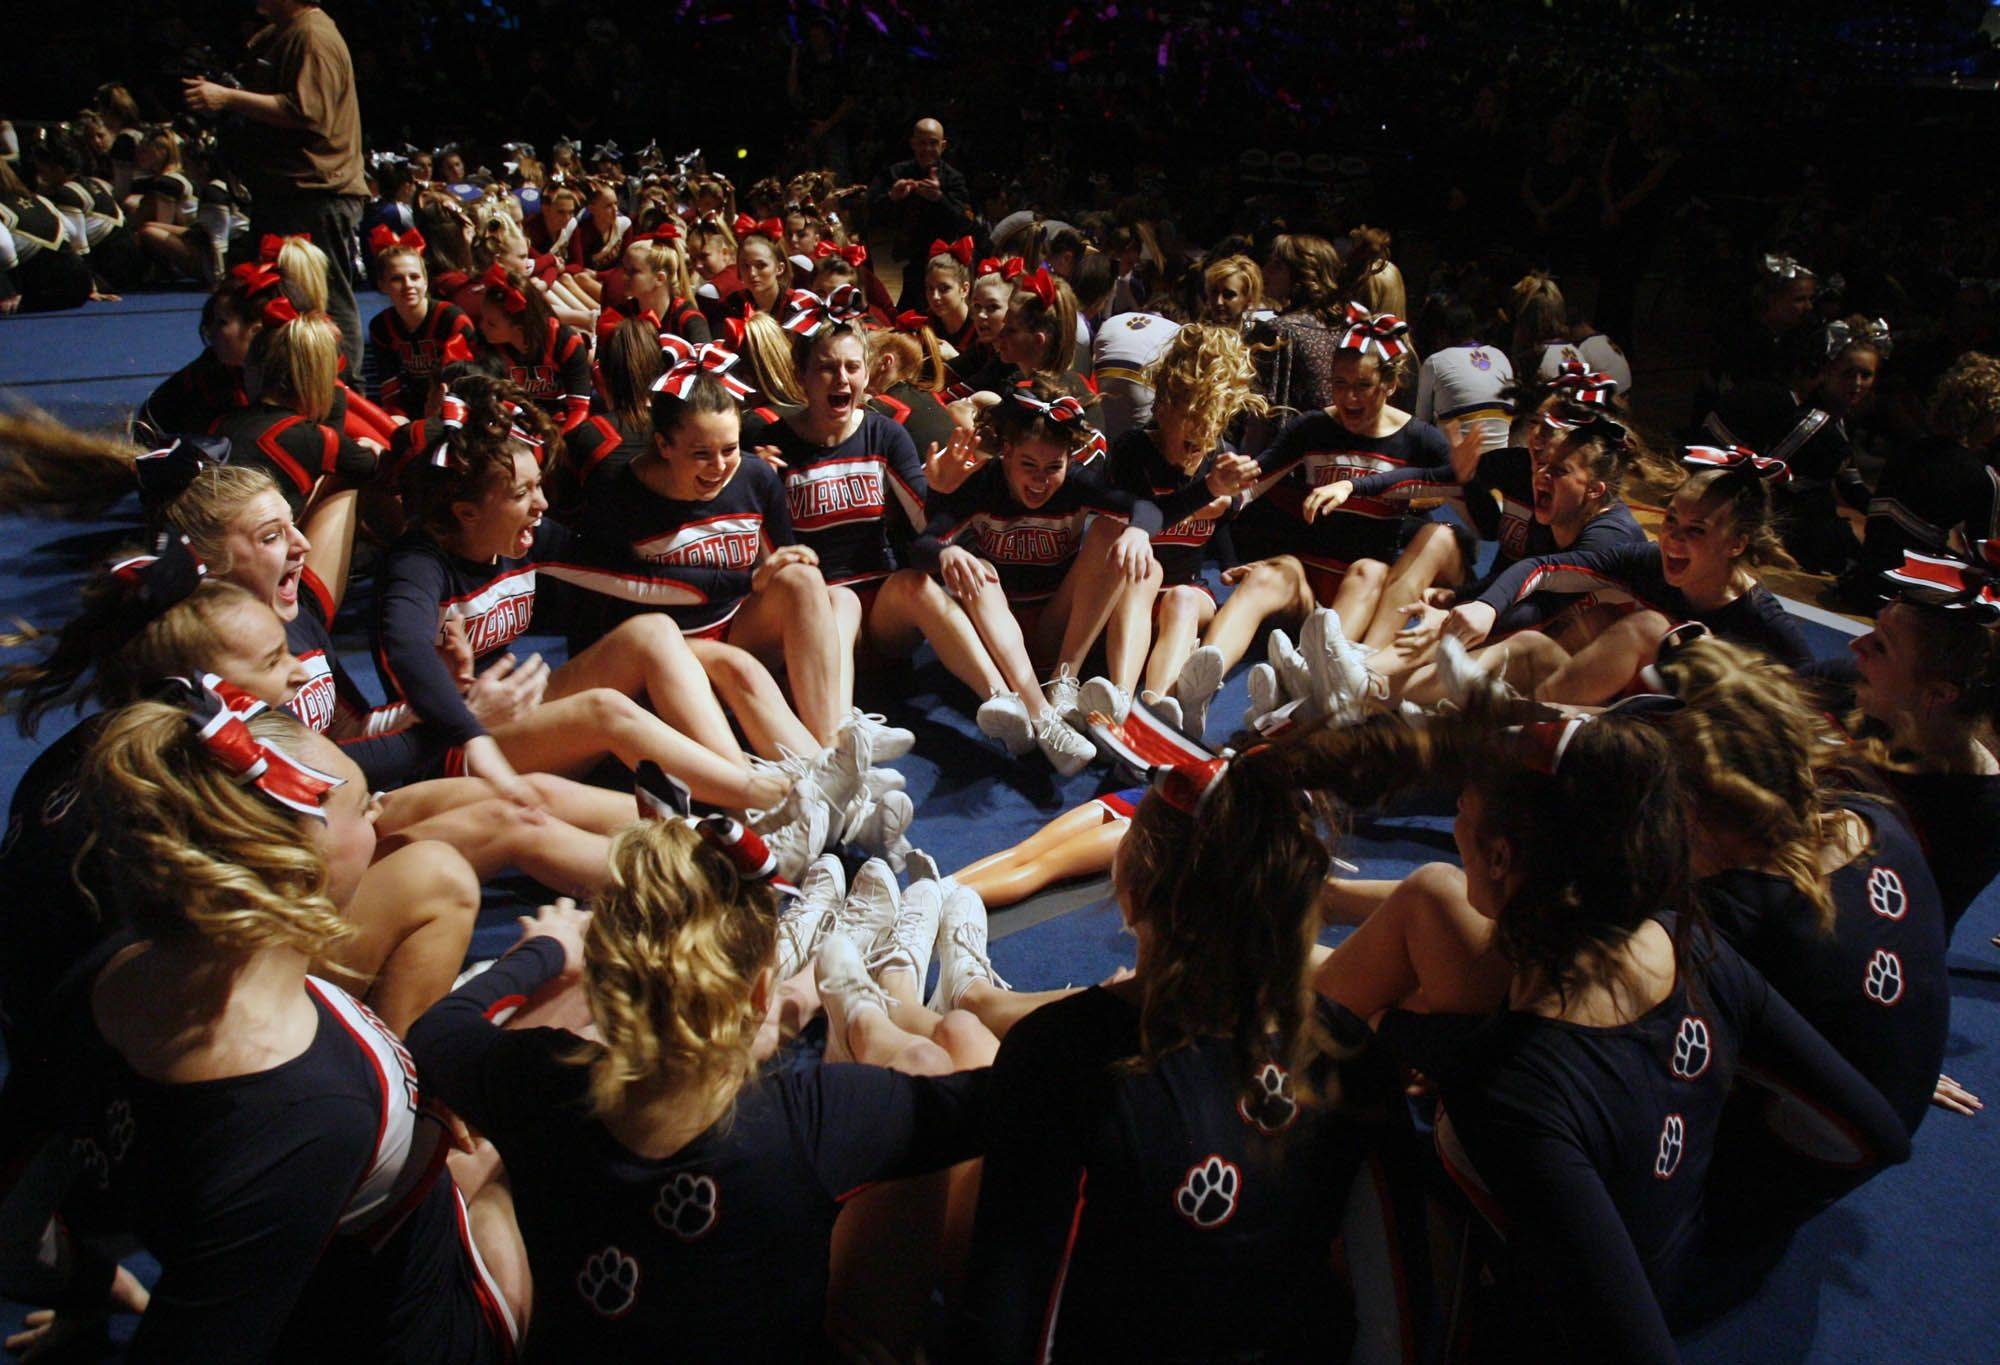 St. Viator High School cheerleading team members hear the announcement they took first place at state finals for the medium school category at U.S. Cellular Coliseum in Bloomington on Saturday.